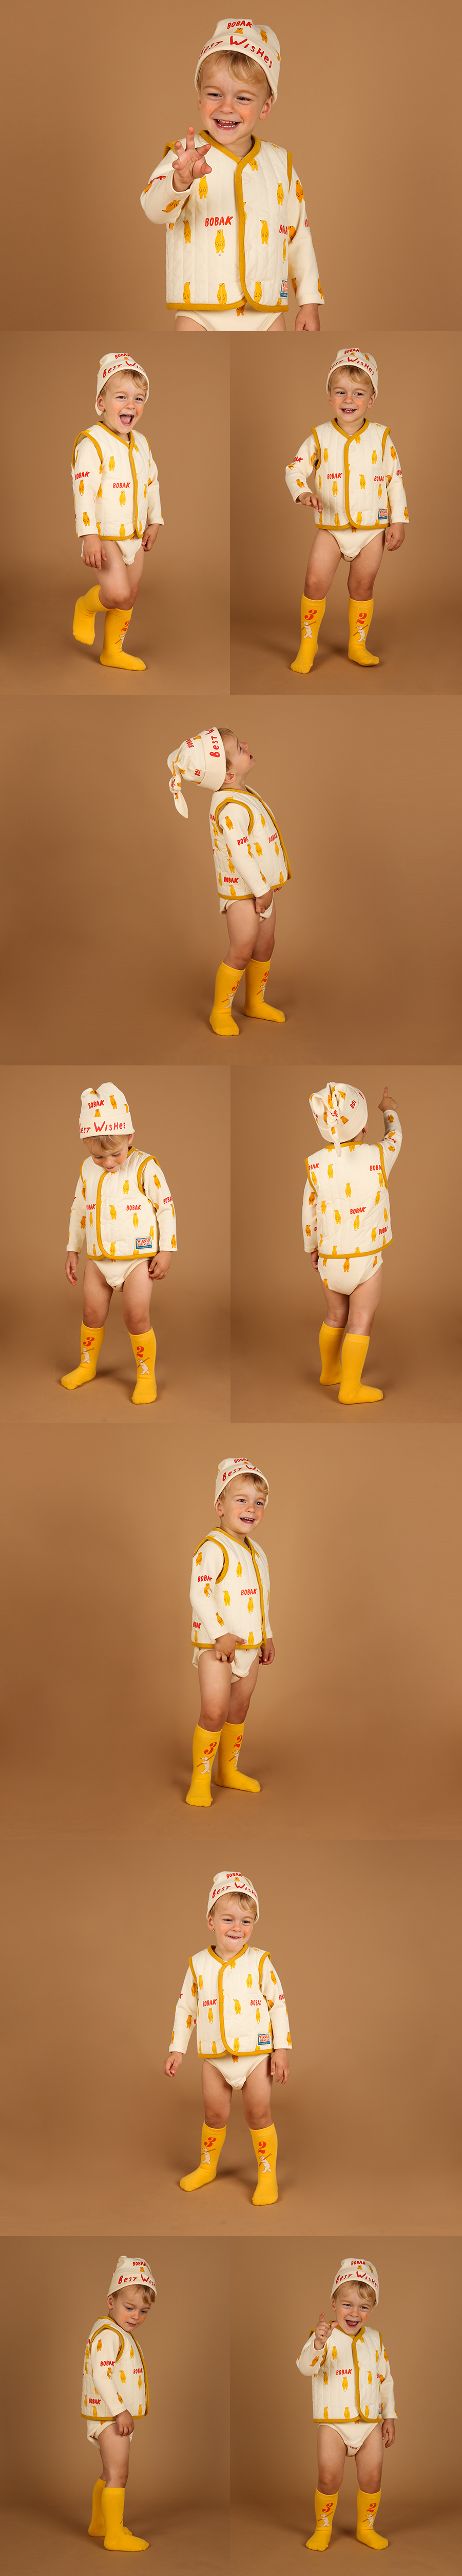 Multi bobak baby bodysuit set 상세 이미지